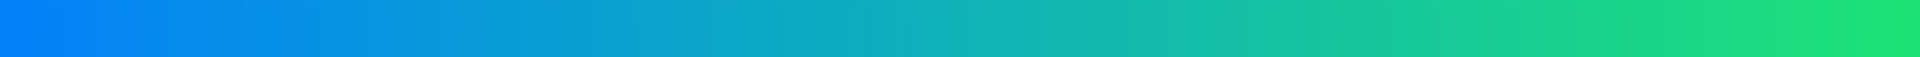 Blue green gradient divider bar horizontal